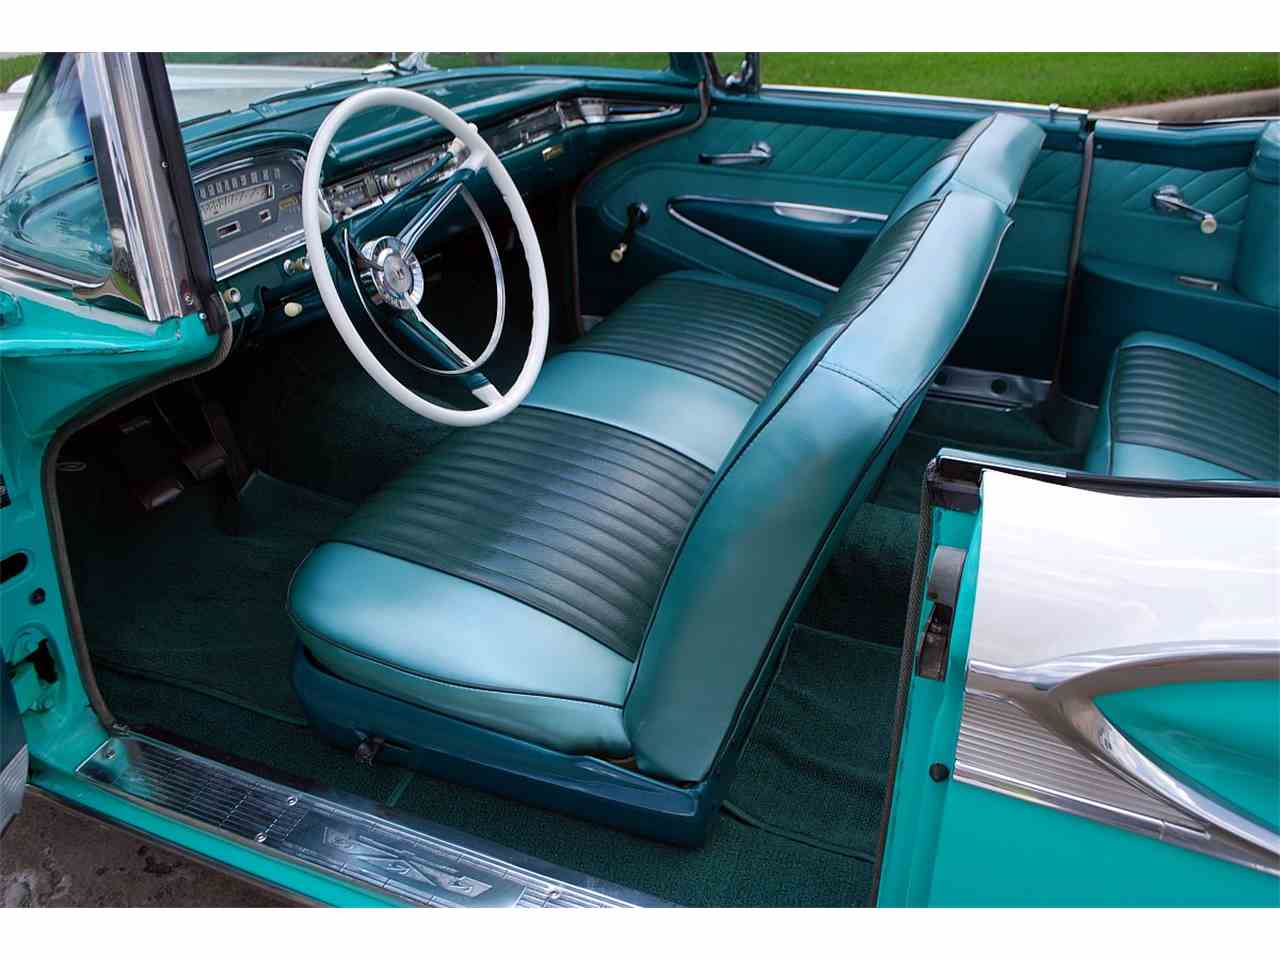 Large Picture of 1959 Ford Galaxie - $39,999.00 Offered by Auto Collectors Garage - LBGZ